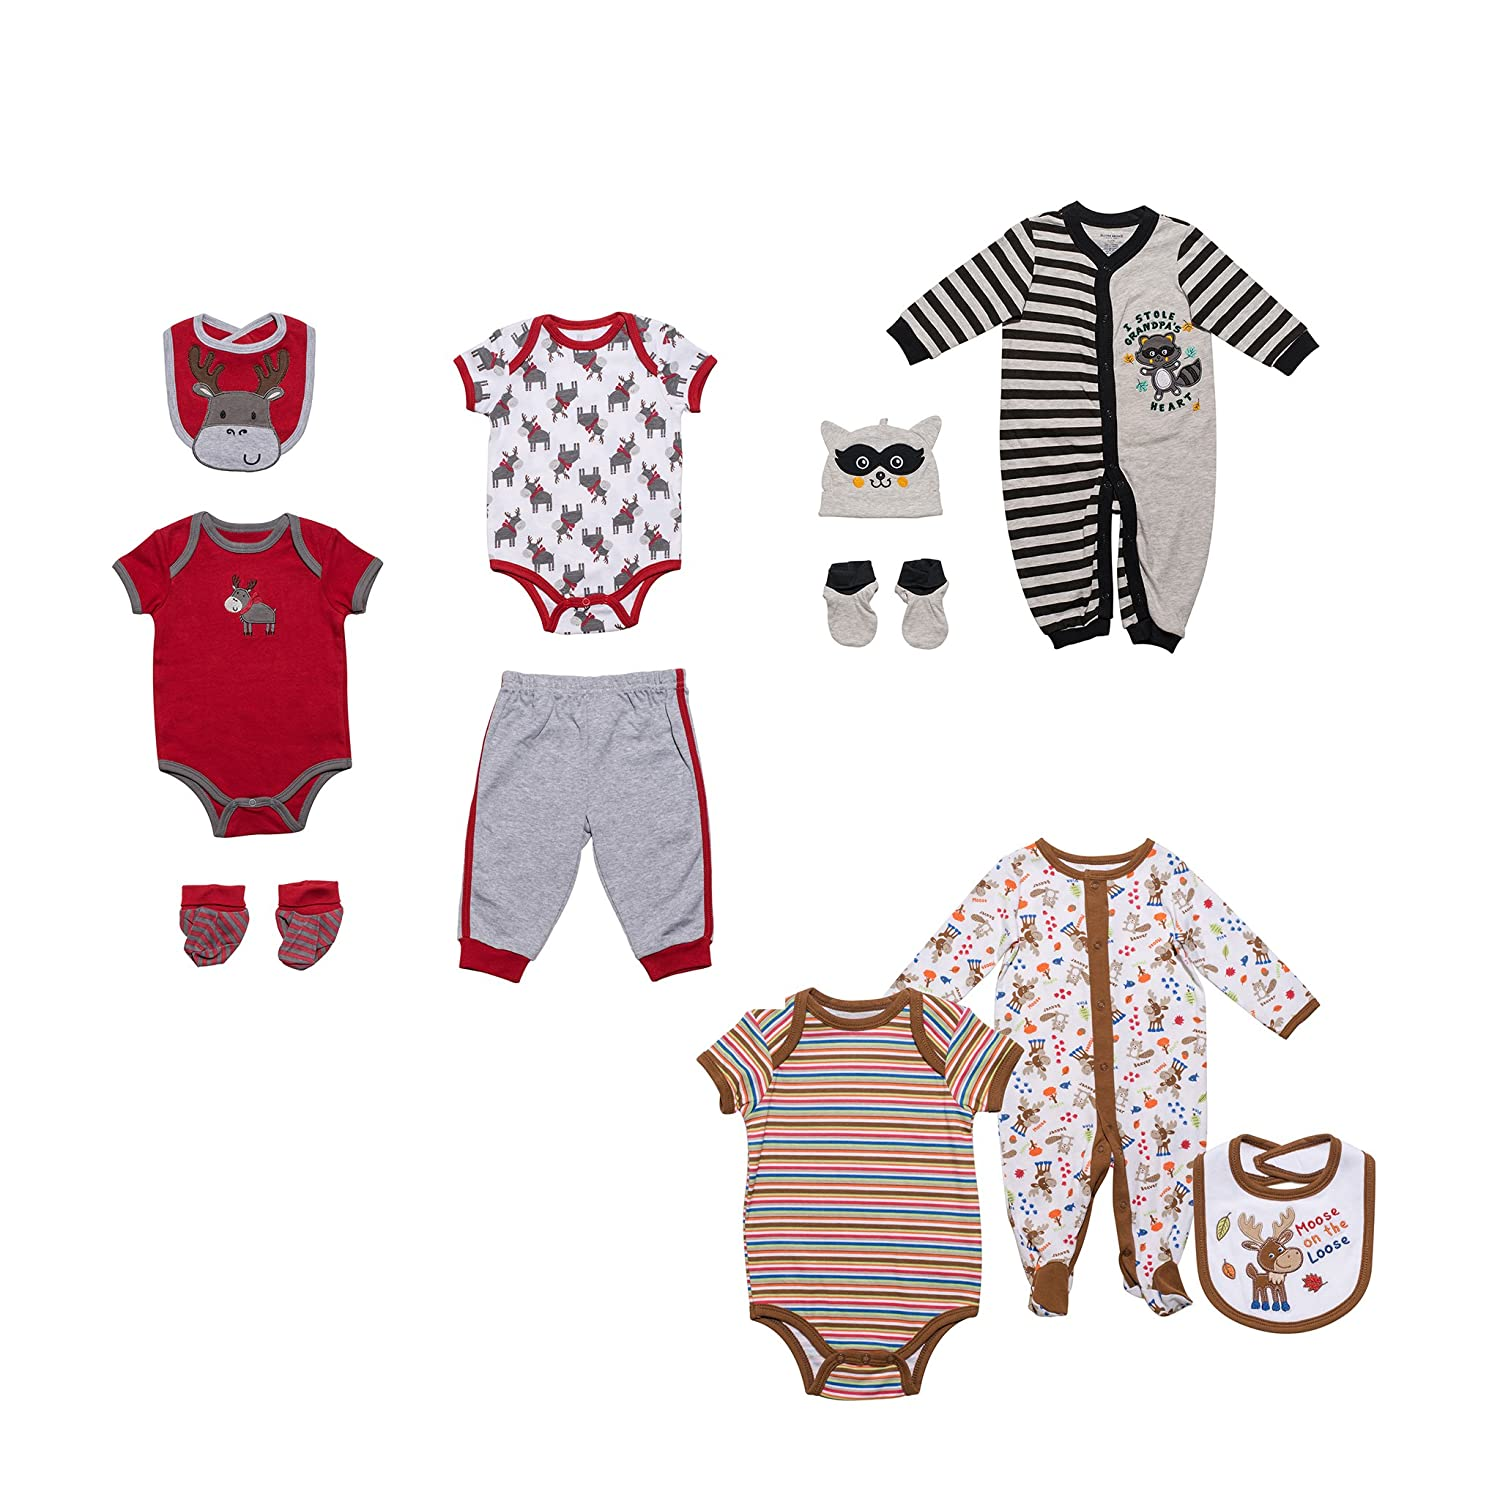 948a5b44c1 Buster Brown Baby Boy 3 Outfit Set (11 pieces)